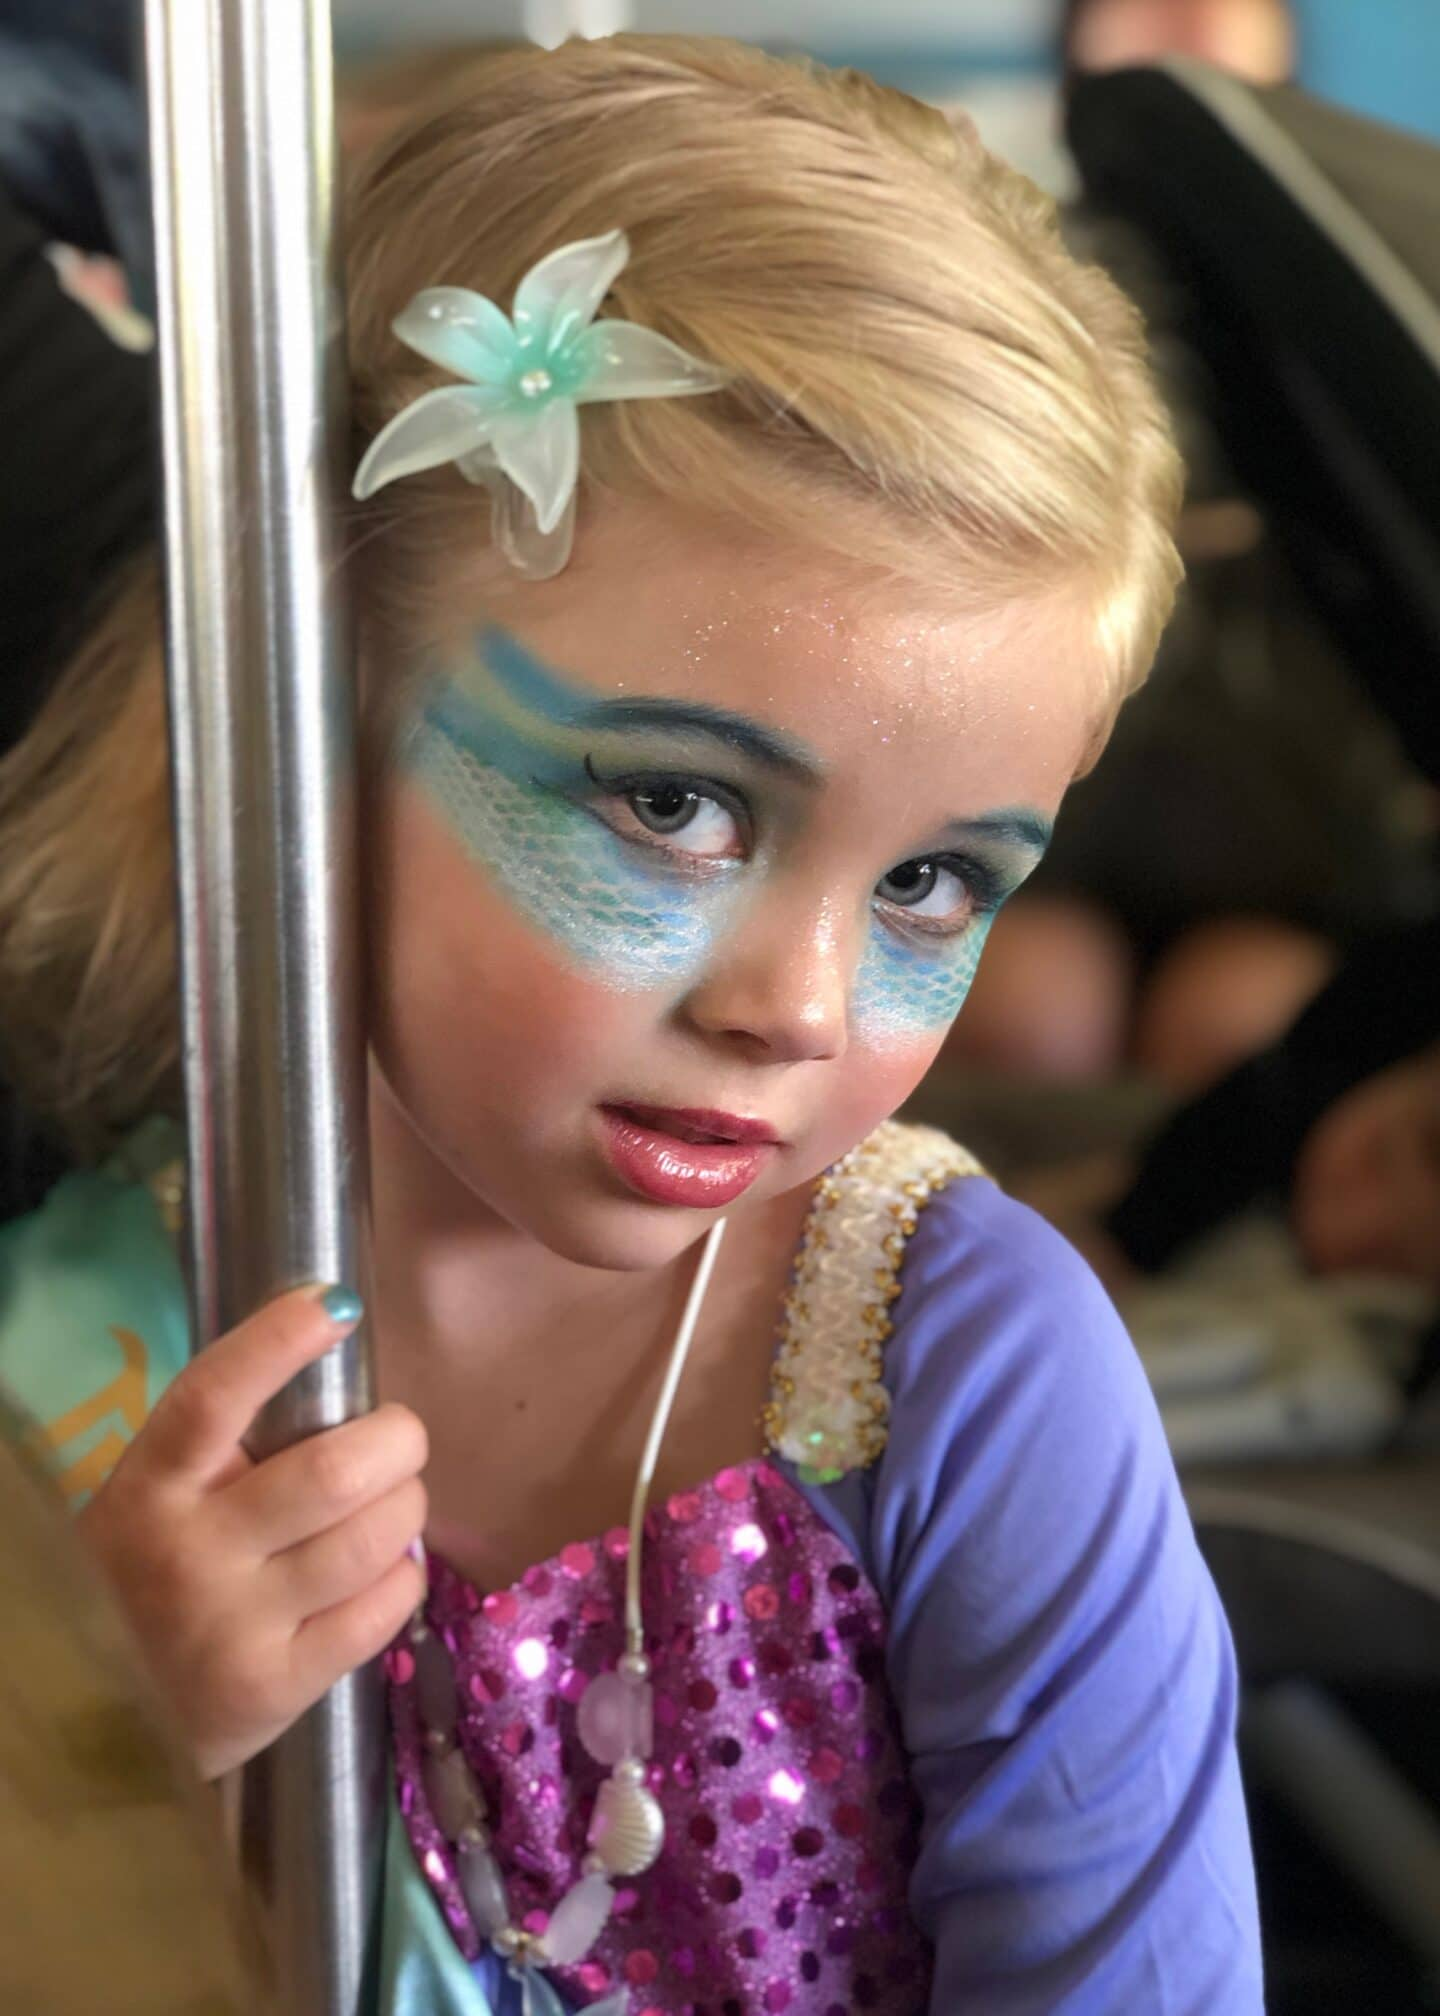 The Pirate's League: Mermaid Makeover at Disney World